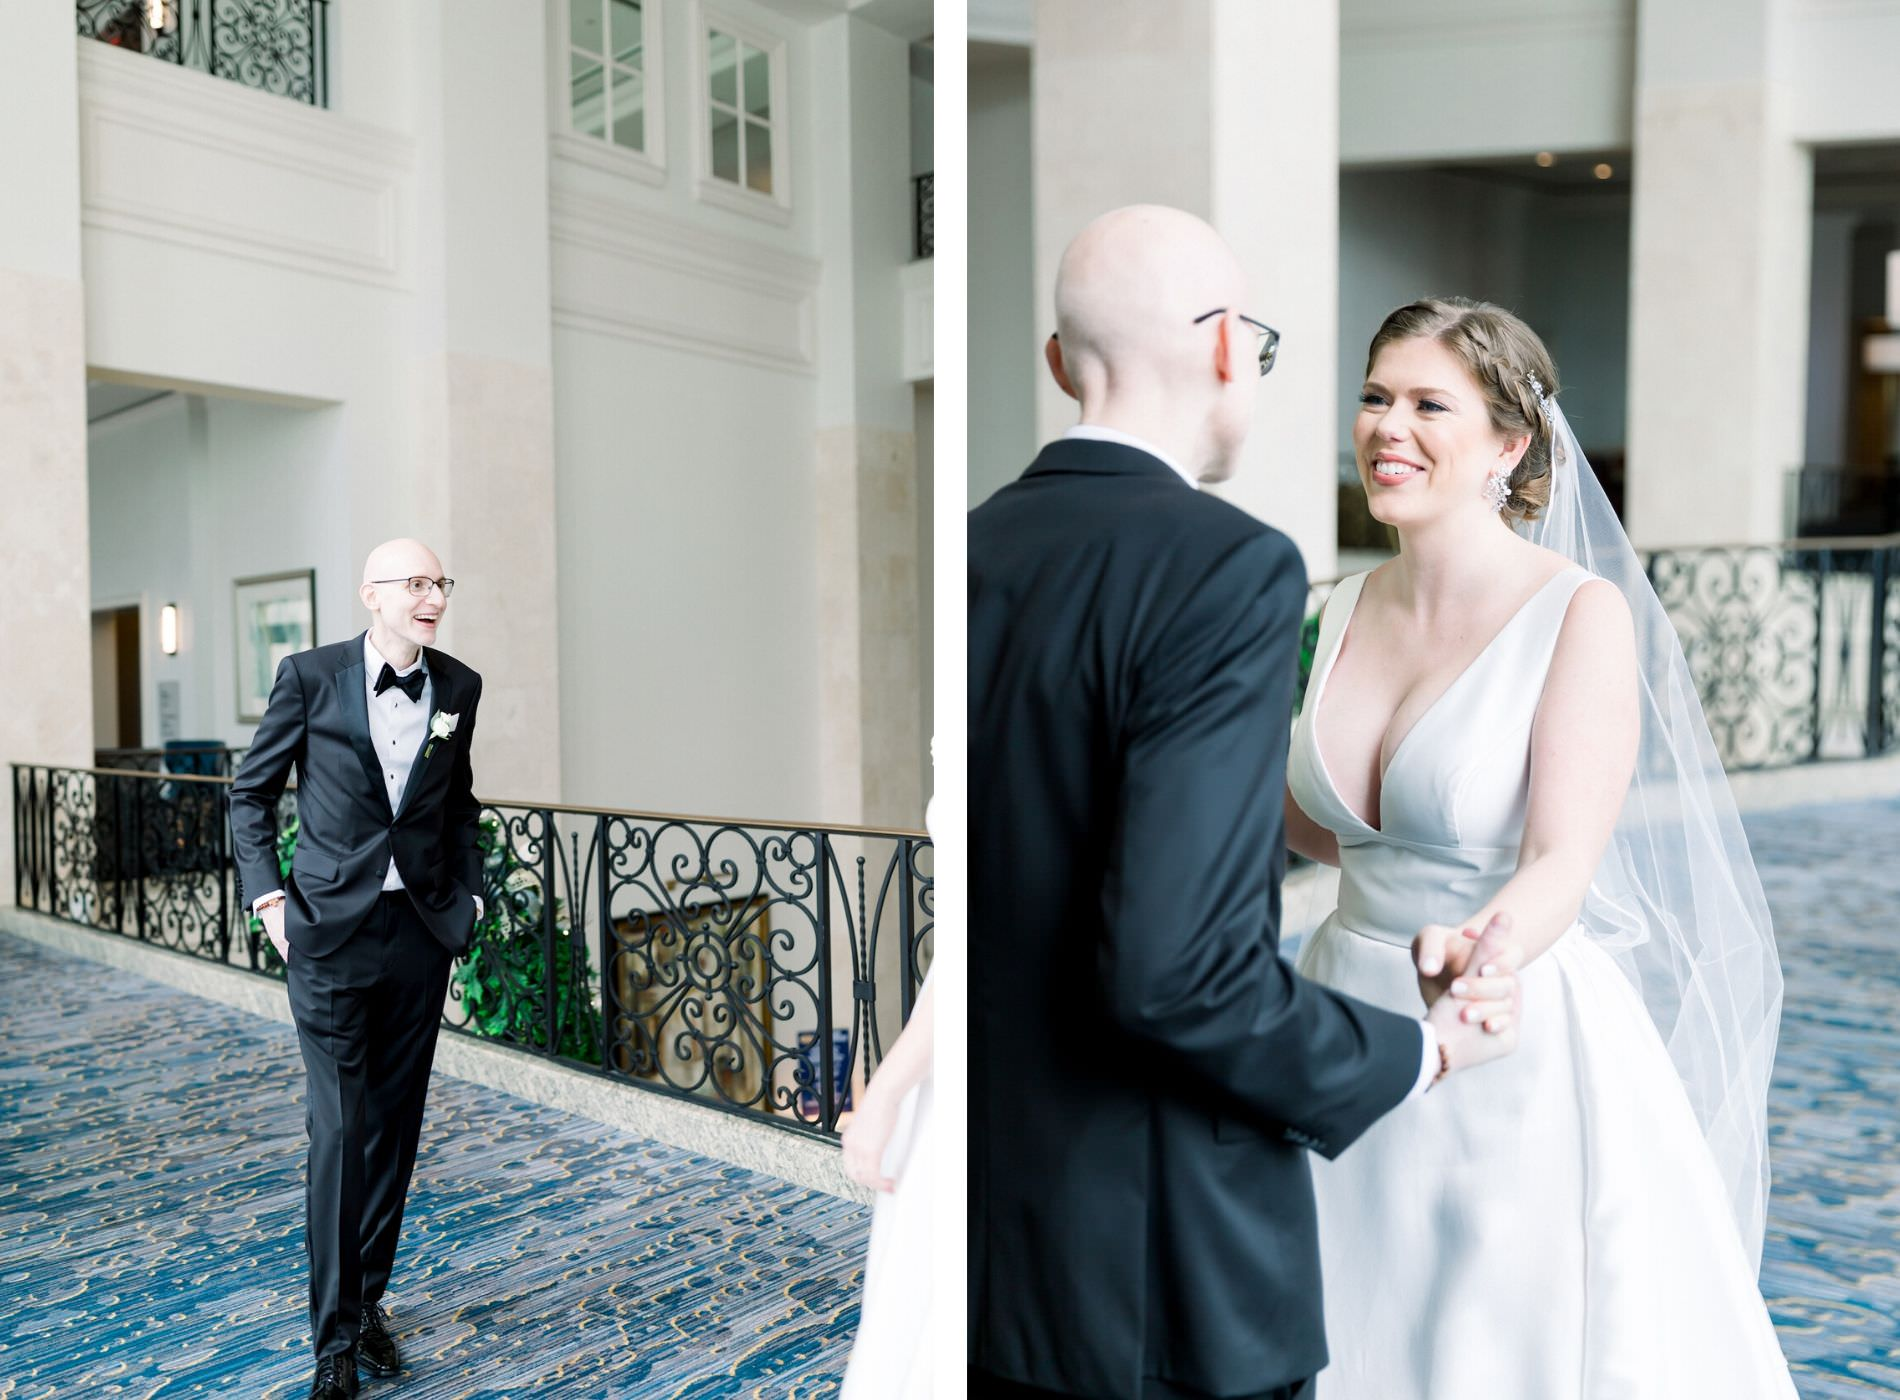 Tampa Groom in Black Tuxedo and Bride in Plunging Neckline Ballgown Wtoo by Watters Wedding Dress | Wedding Photographer Shauna and Jordon Photography | Wedding Hair and Makeup Femme Akoi